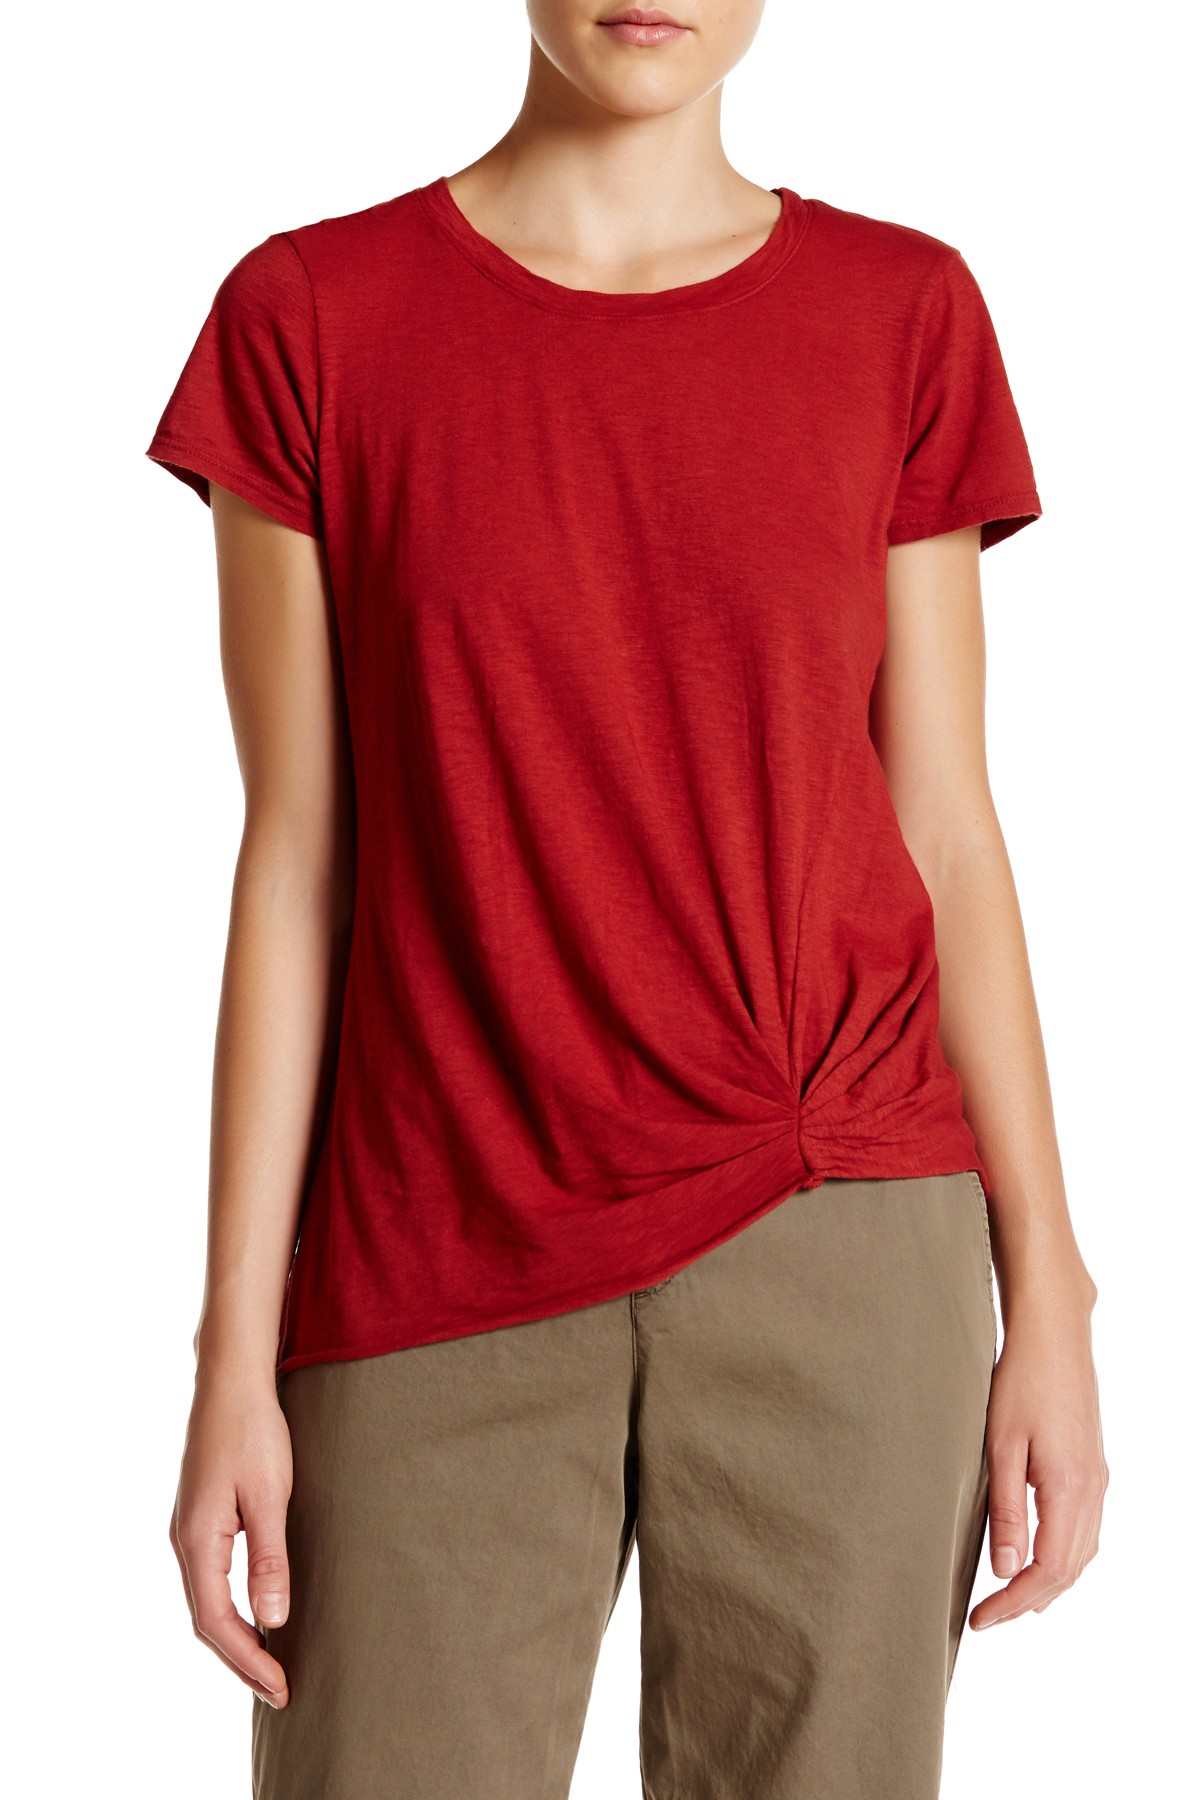 Michael stars pleated detail crew neck tee in red lyst for Michael stars tee shirts